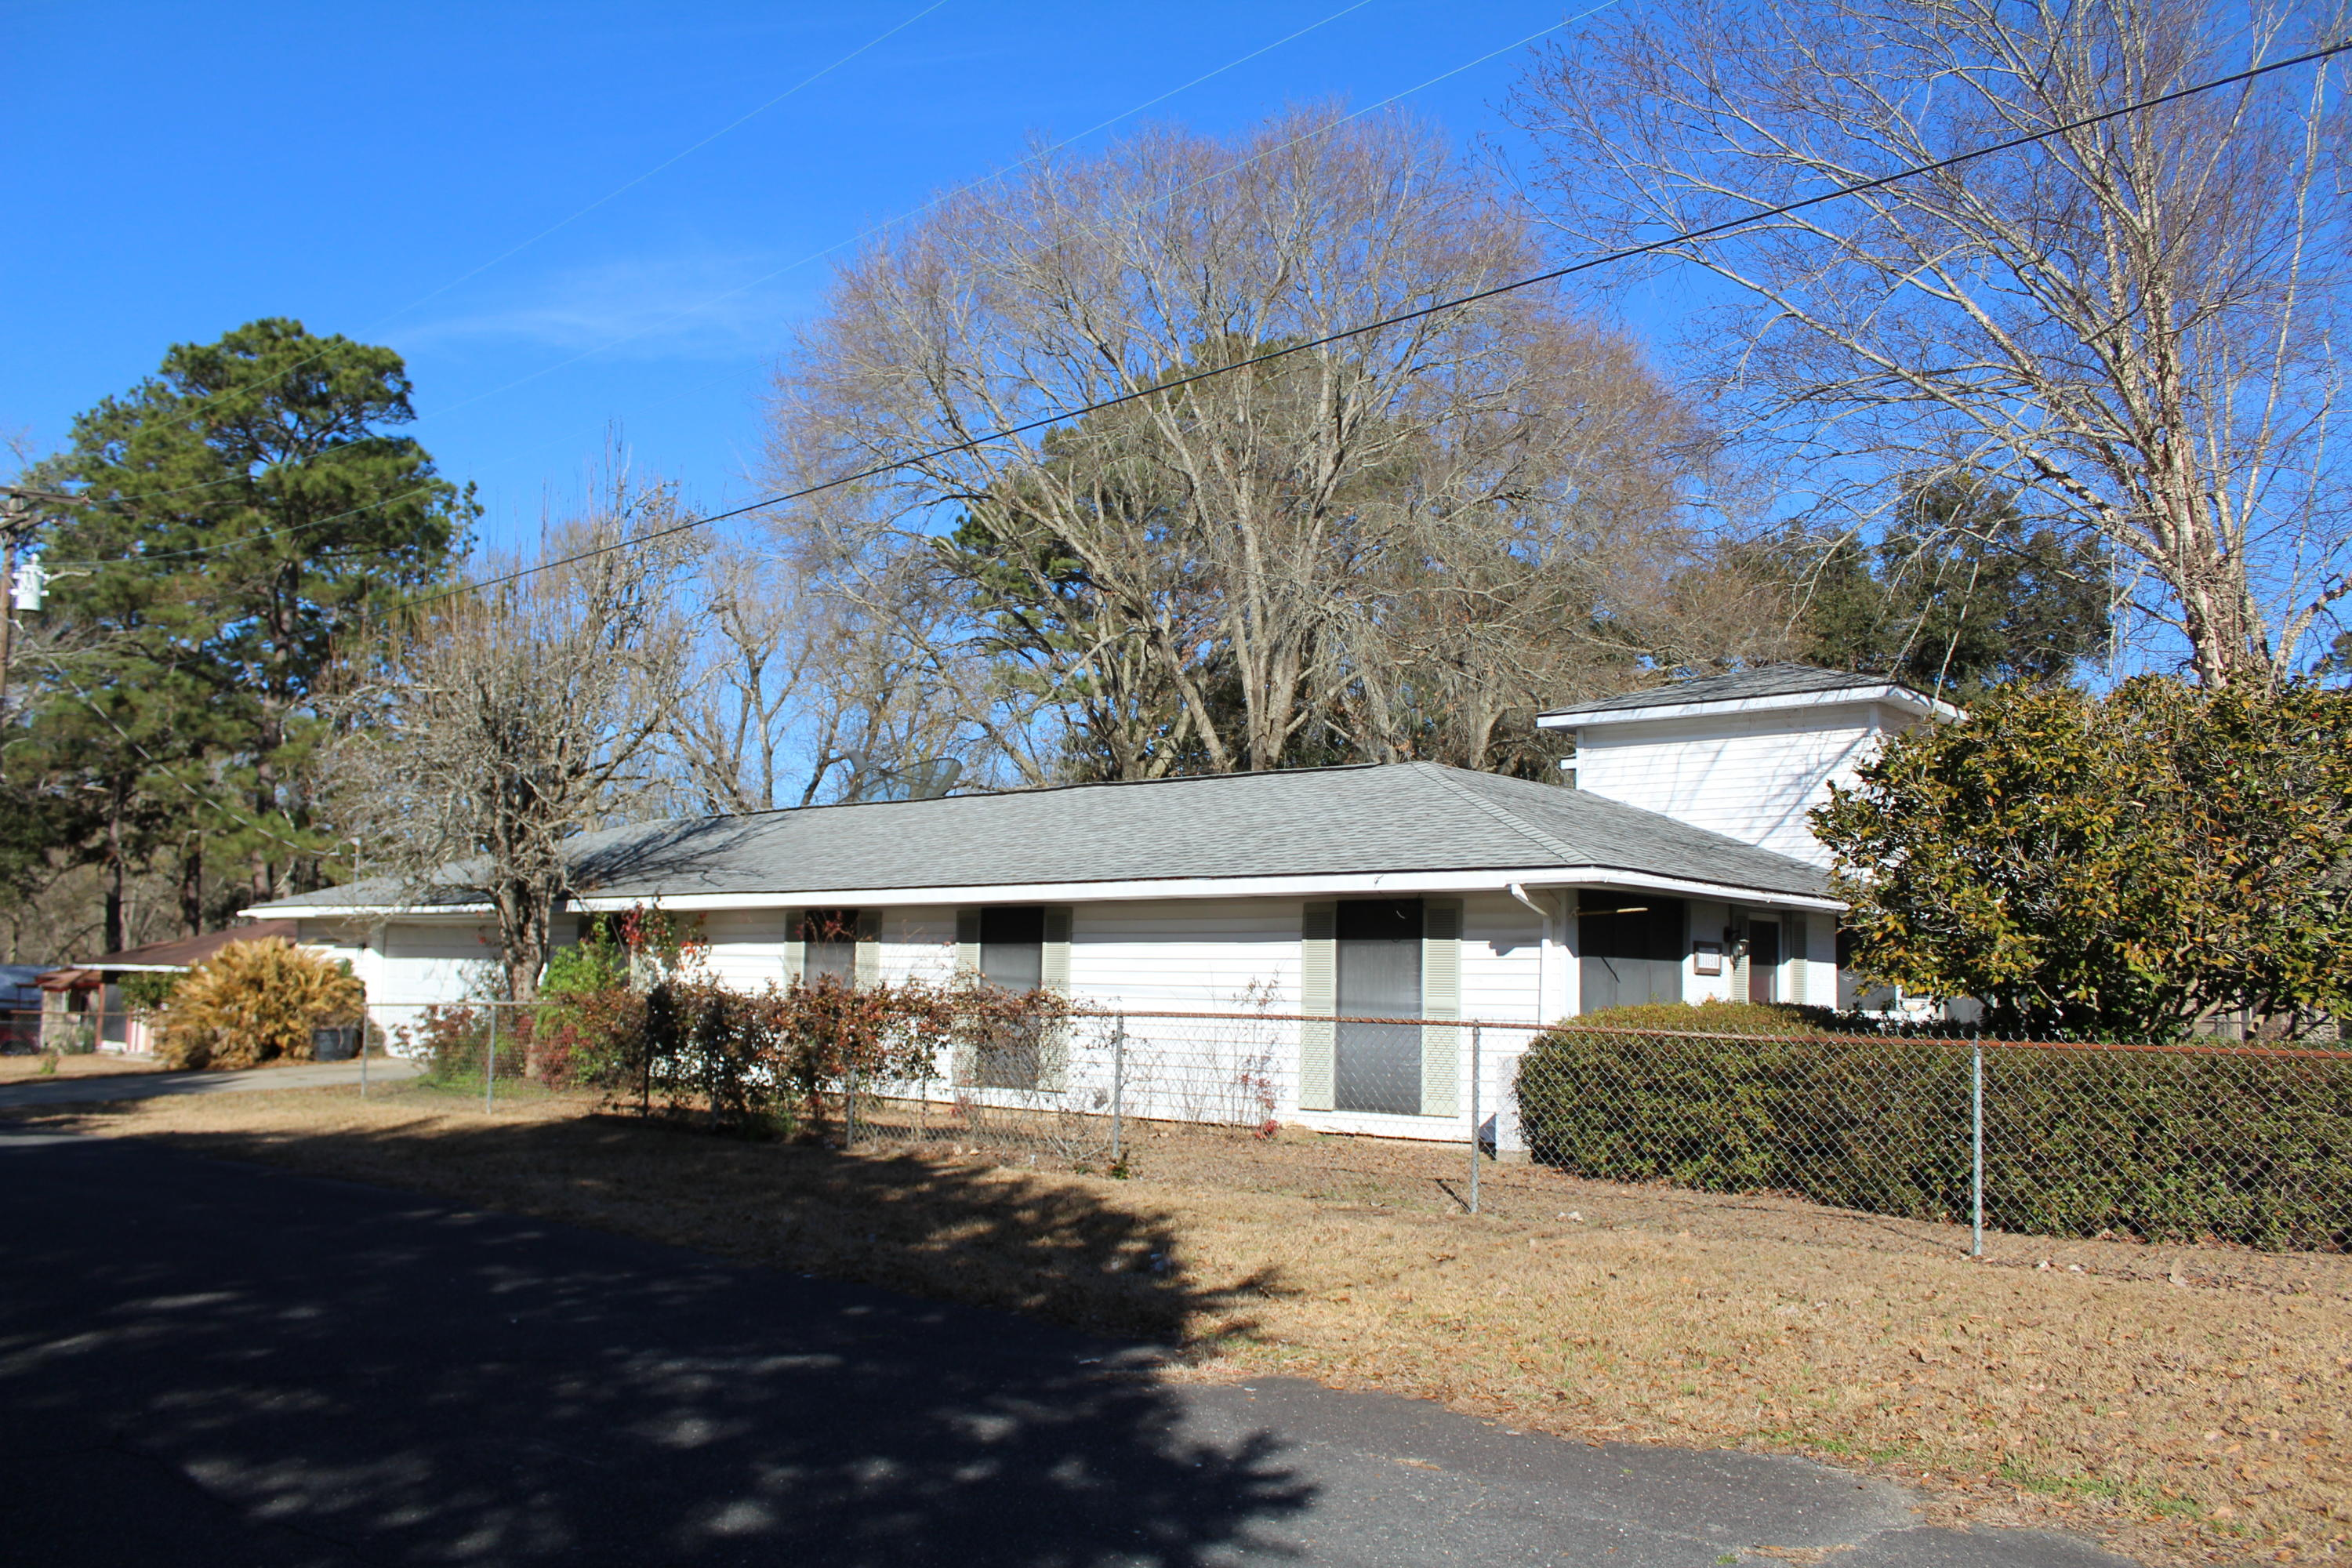 DeRidder home for sale, 1113 Texas, N, DeRidder LA - $189,000